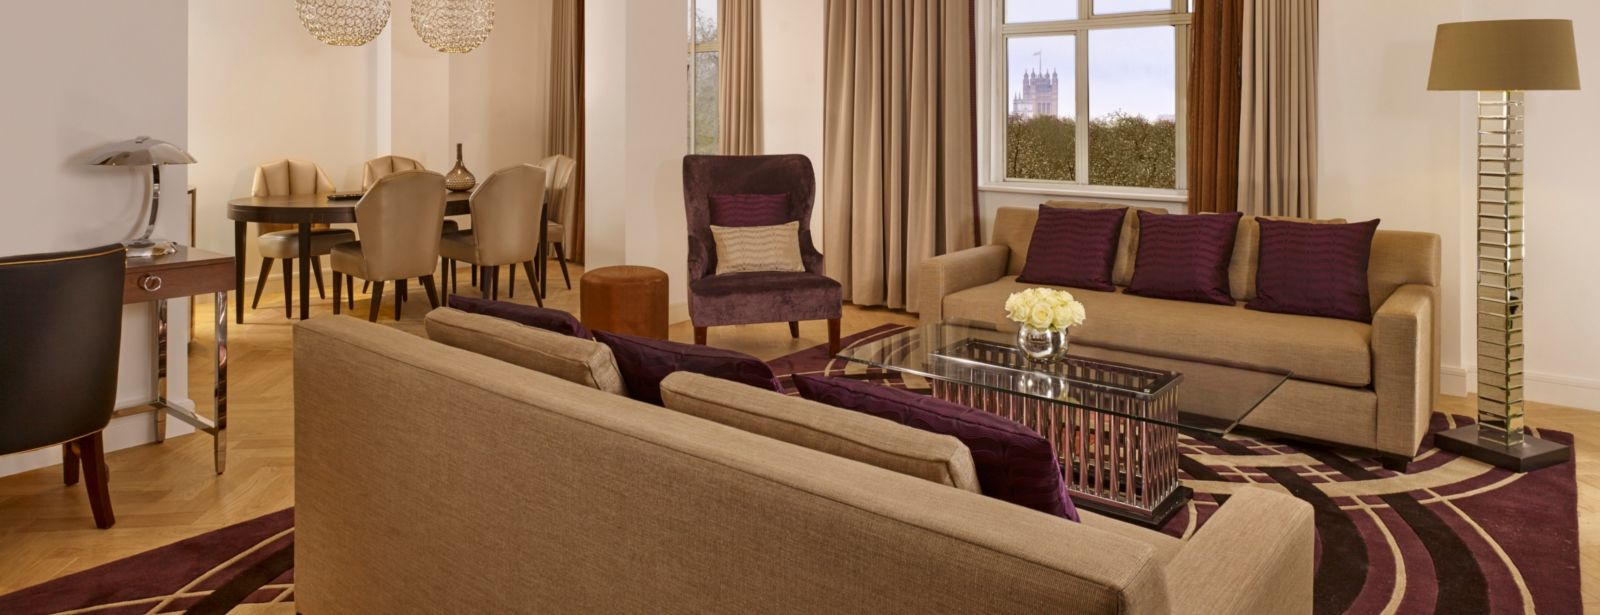 renovated-park-view-suite-at-the-sheraton-grand-park-lane-hotel-2